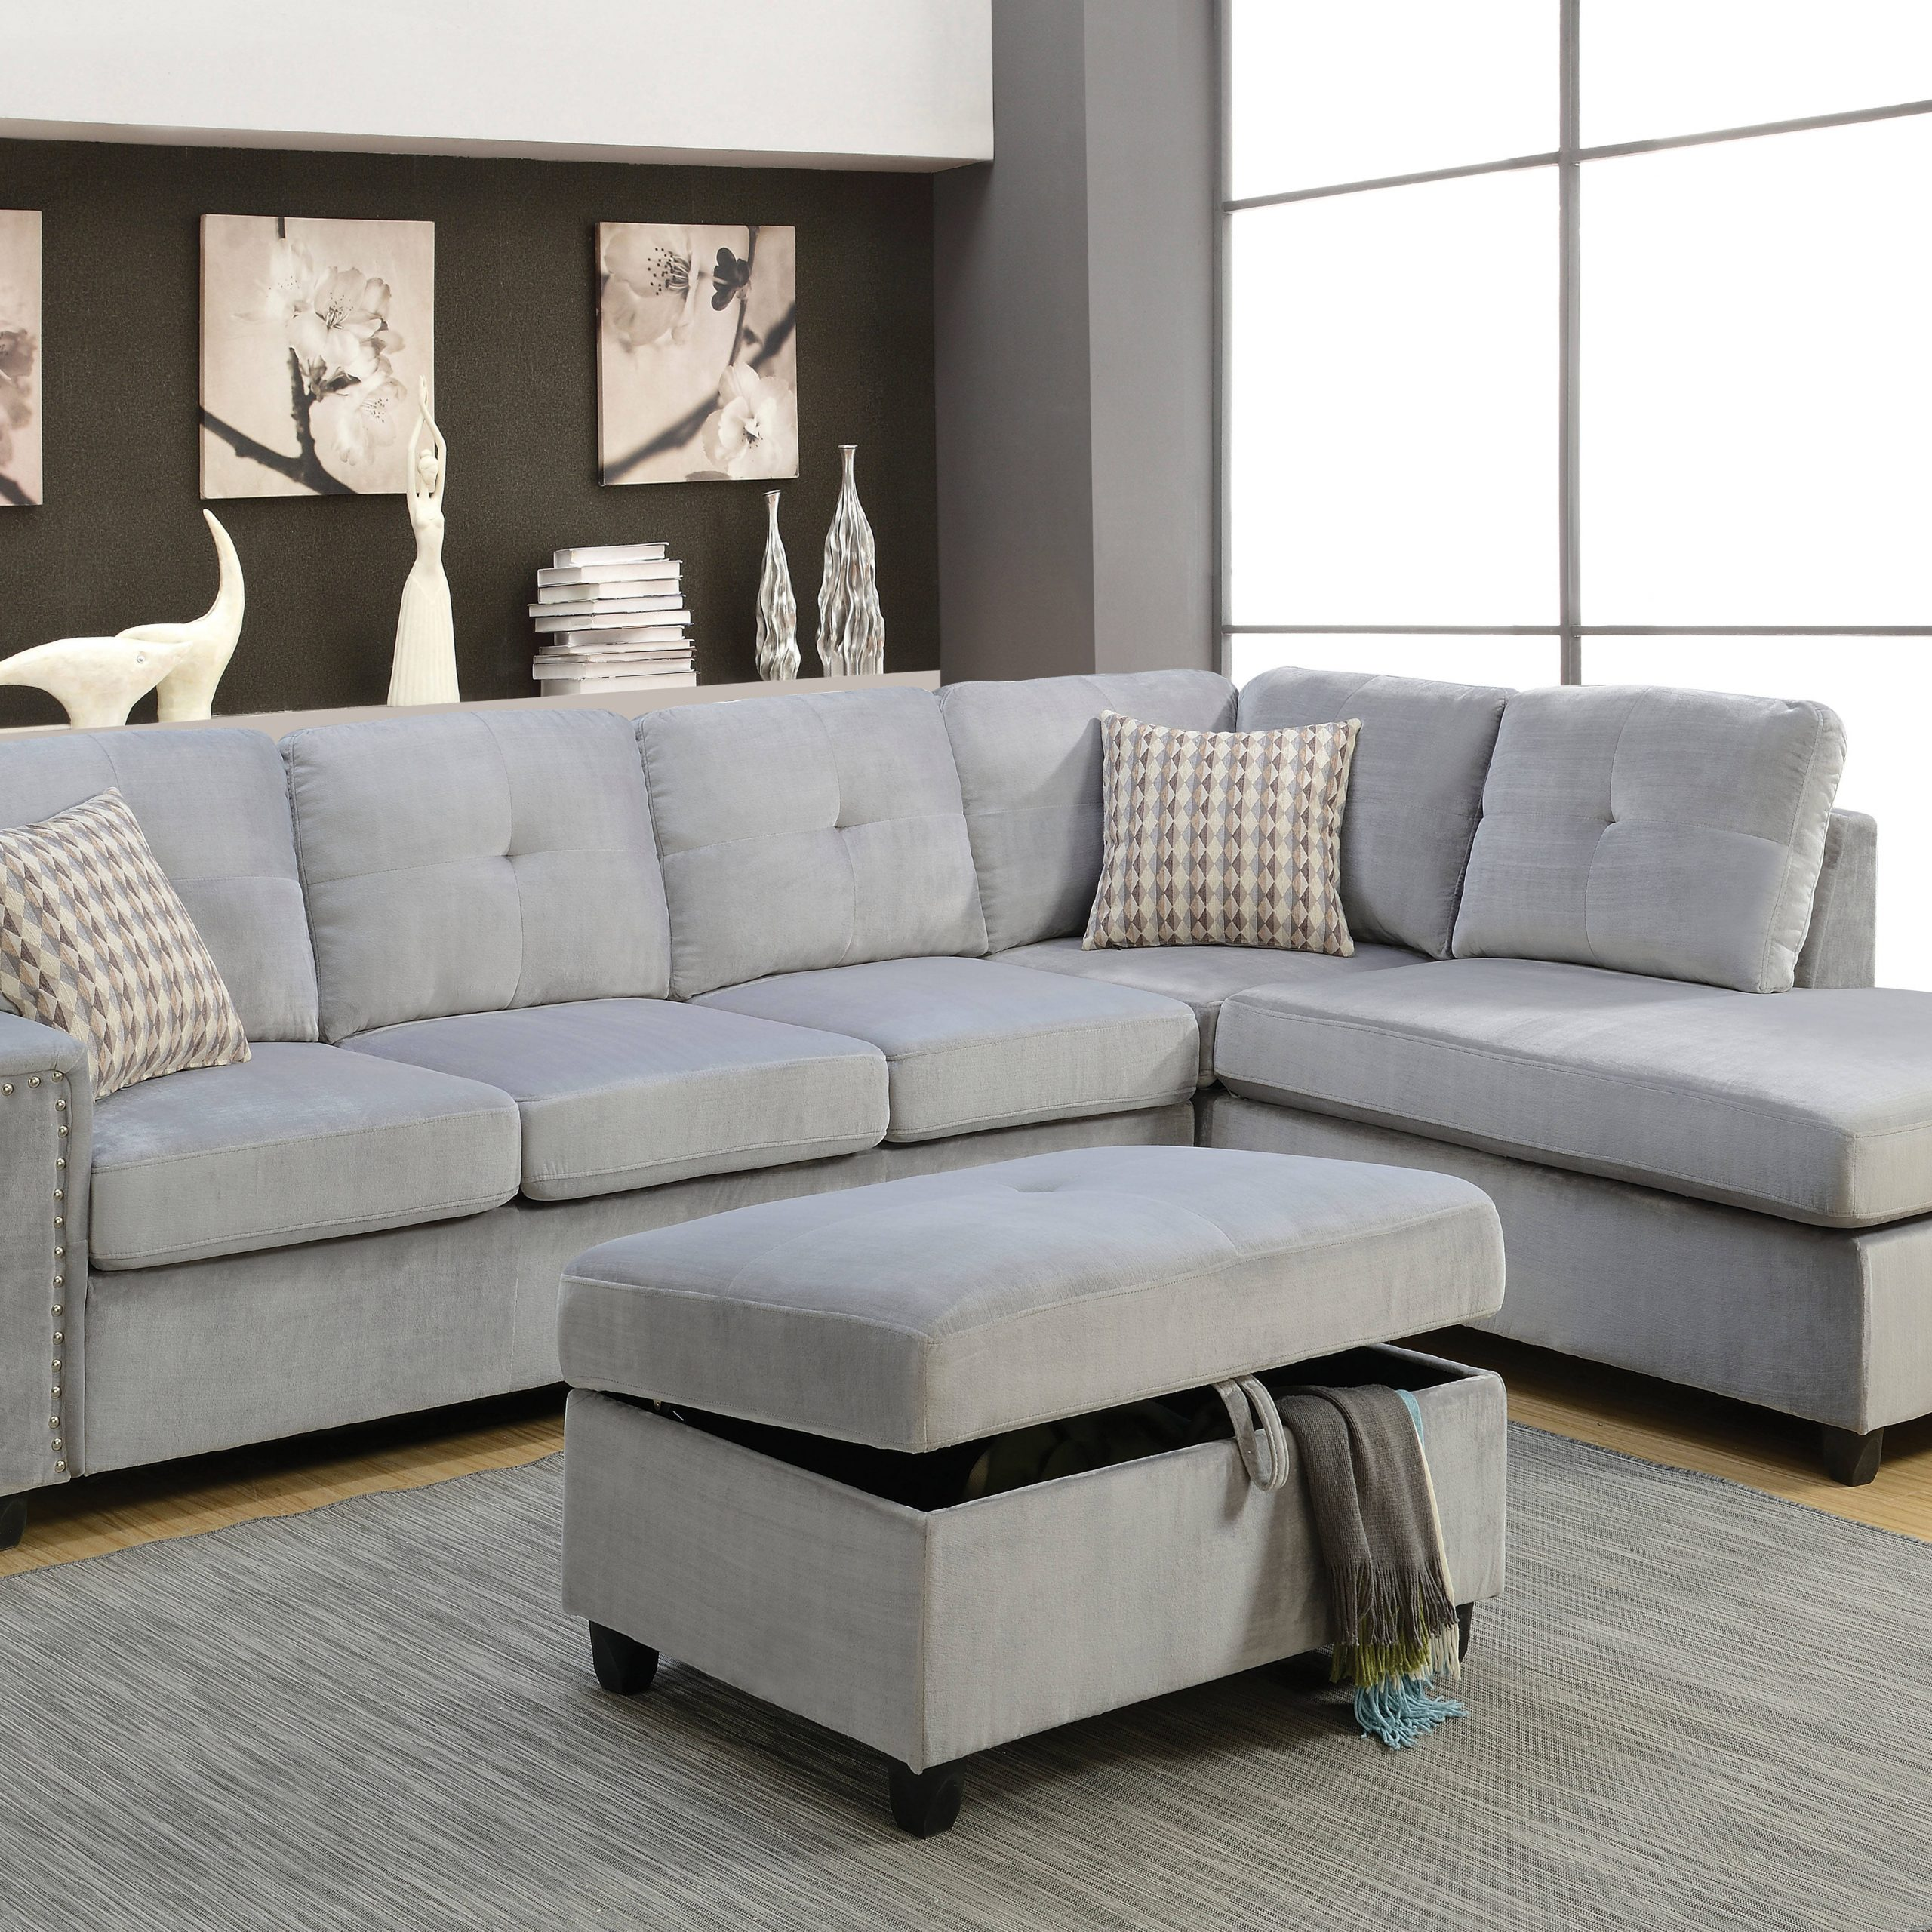 Acme Furniture Belville Gray Reversible Sectional Sofa Intended For Grey Sofa Chairs (View 9 of 15)